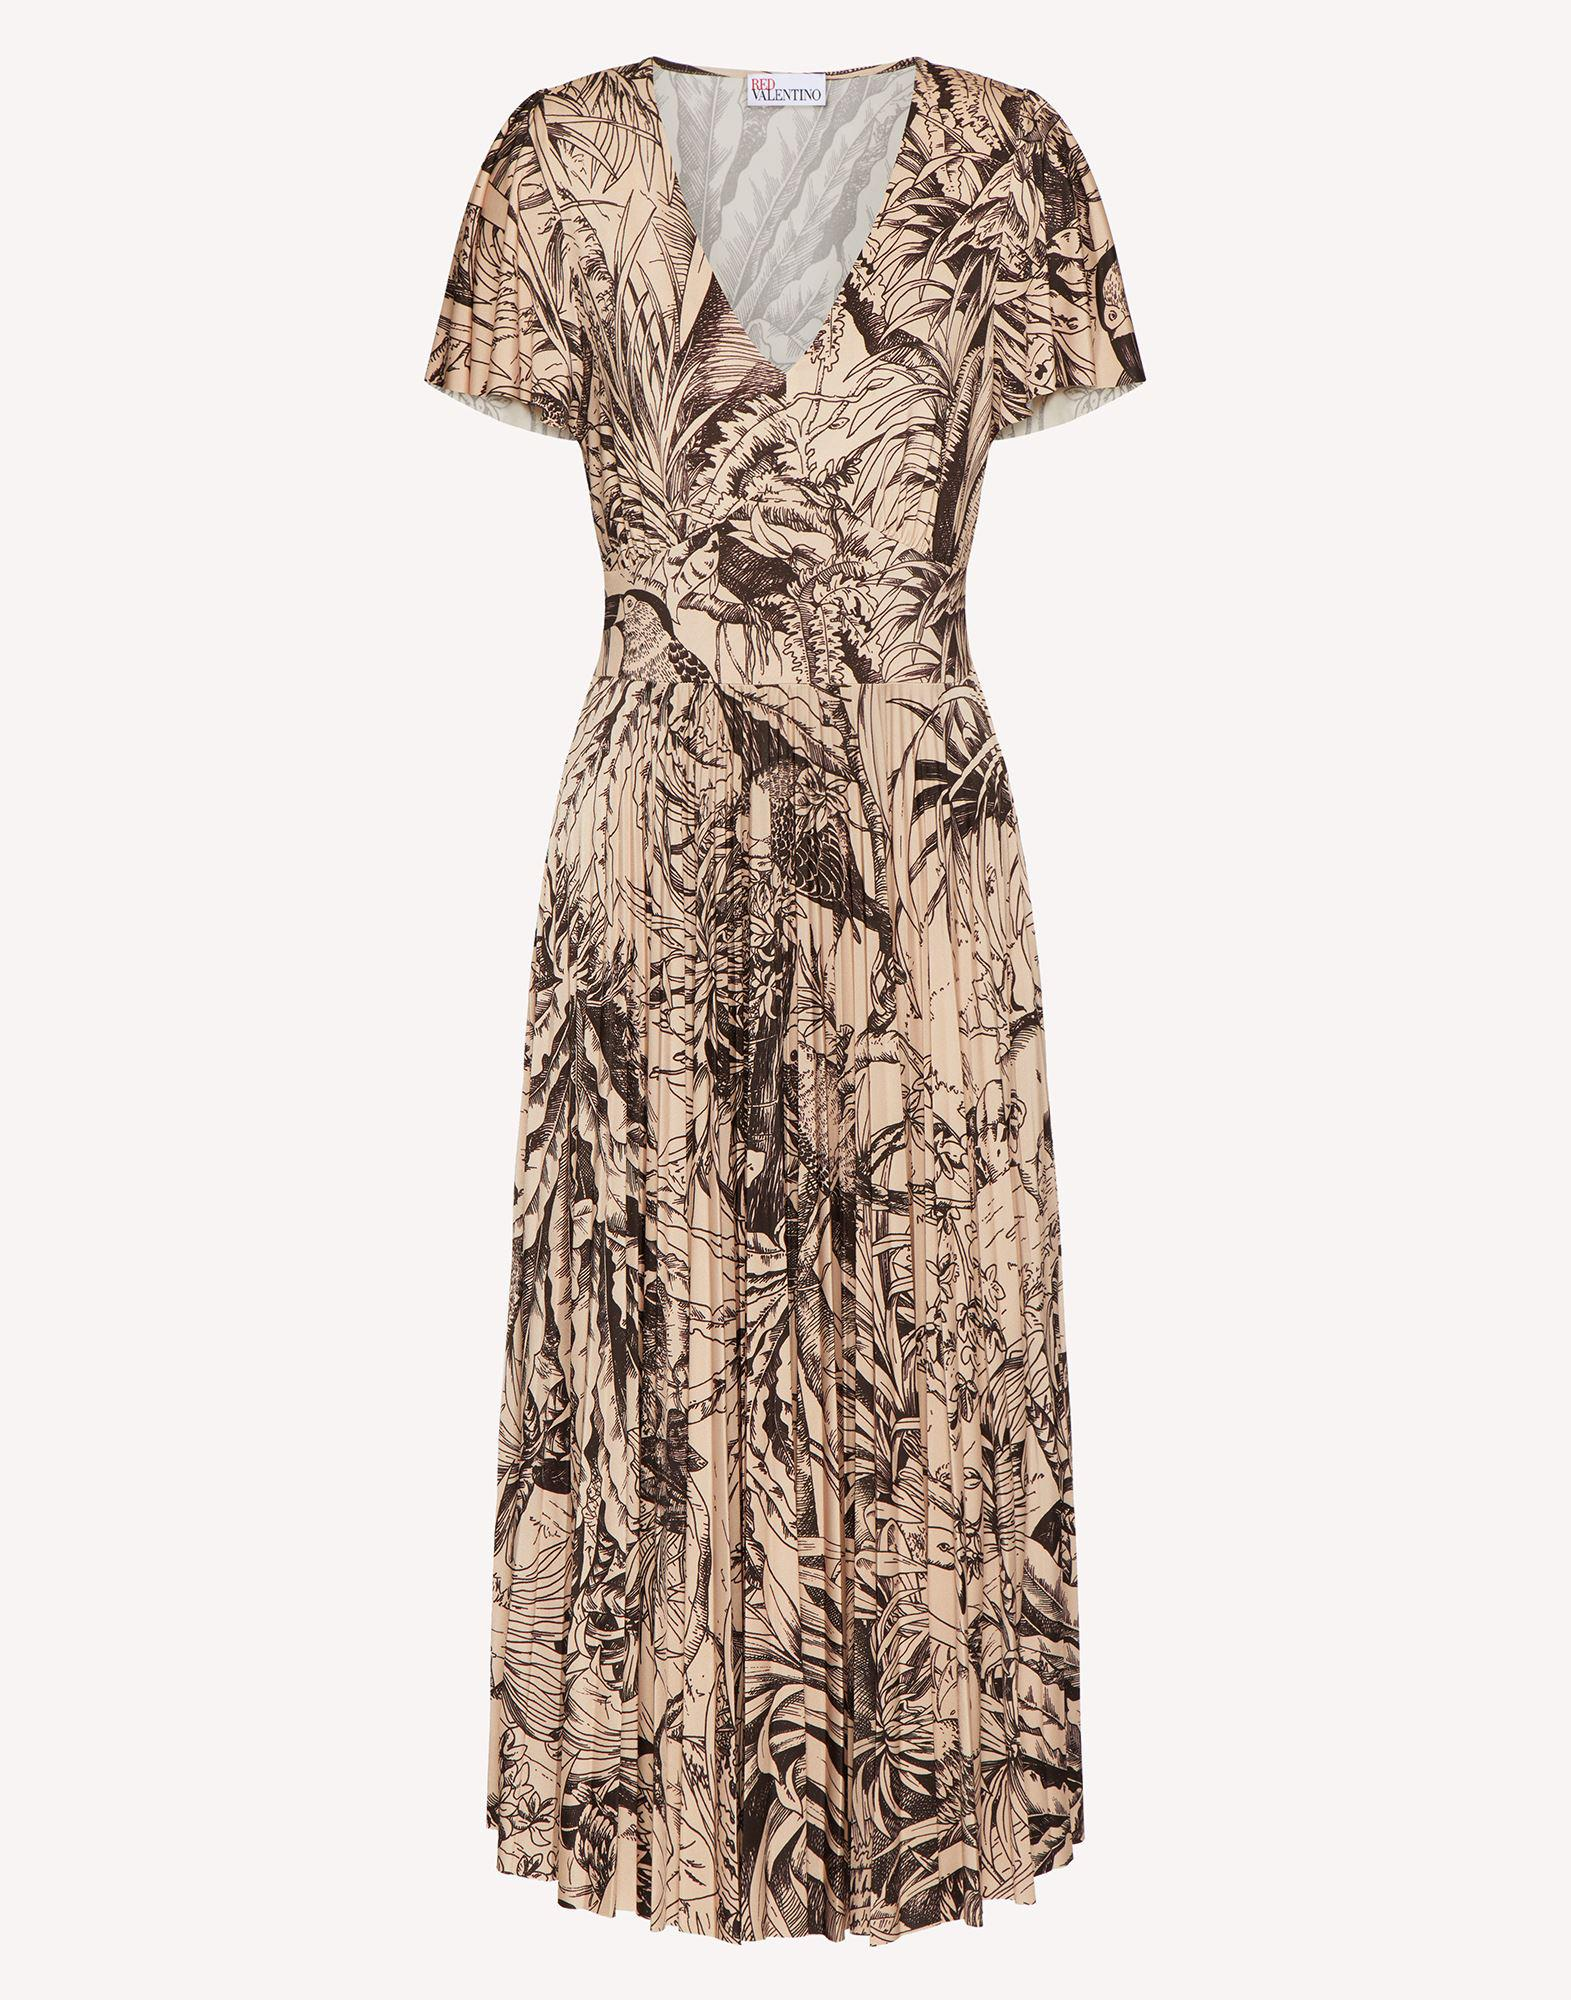 JERSEY DRESS WITH JUNGLE TOILE PRINT 4